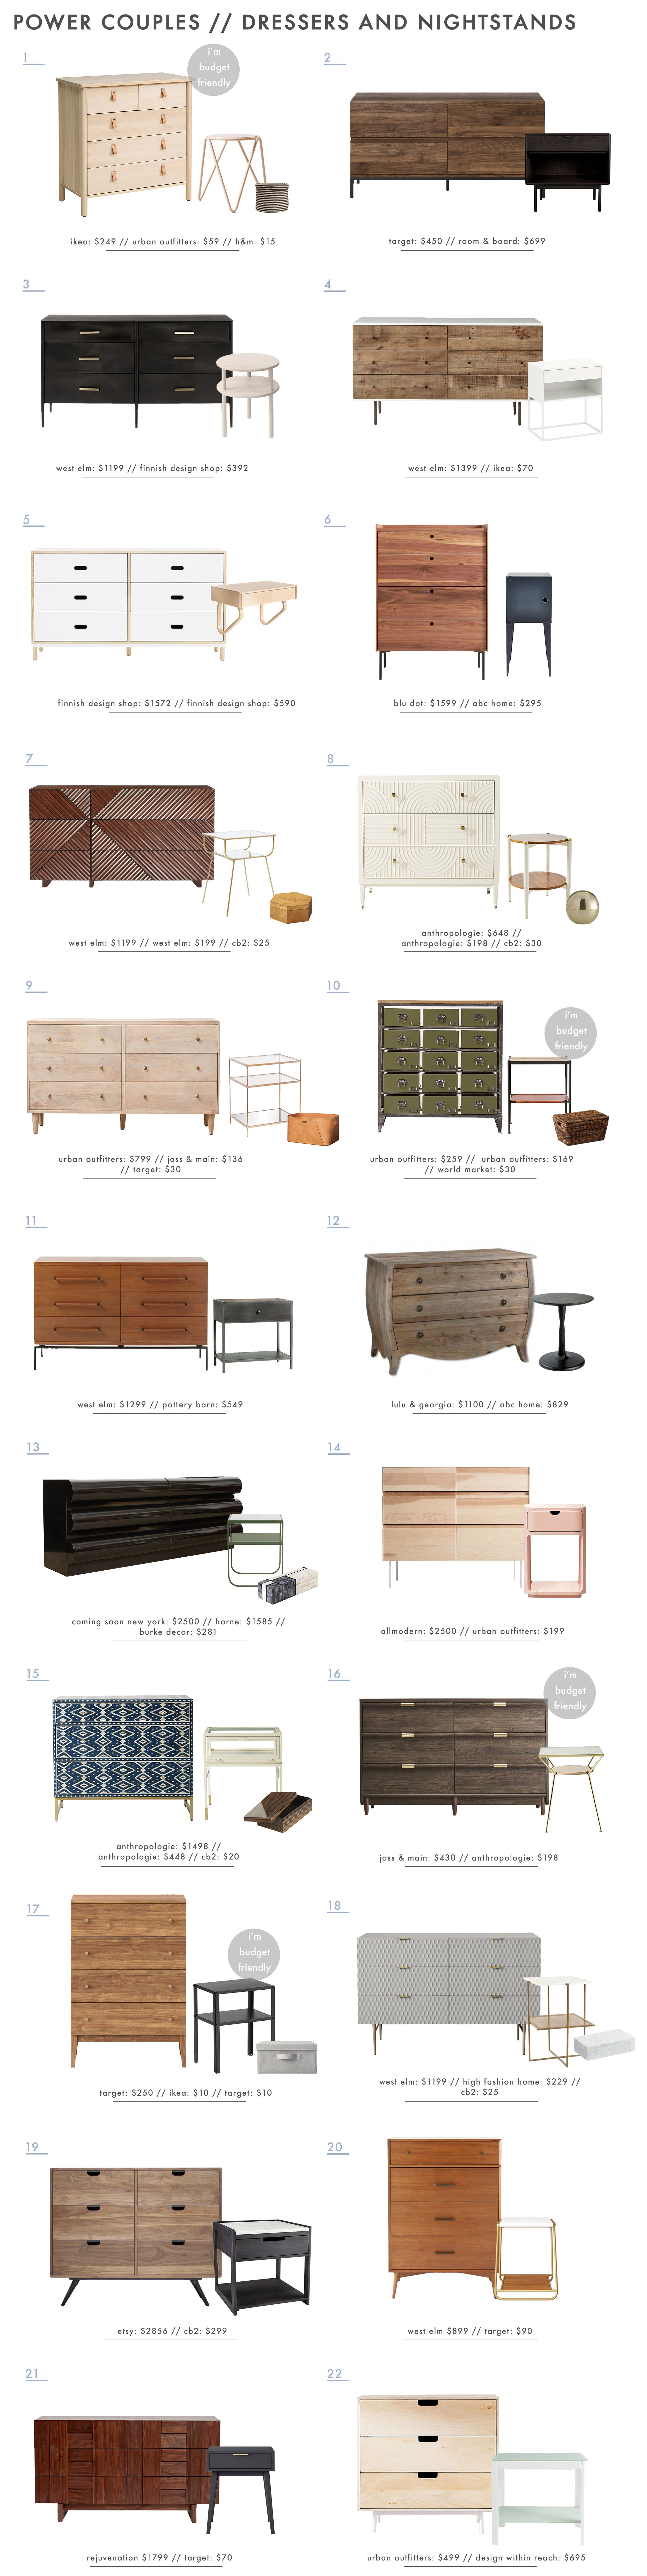 Power Couples 22 Perfect Dresser Nightstand Combos For Your Bedroom Bedroom Designs For Couples Dresser As Nightstand Bedroom Design Diy